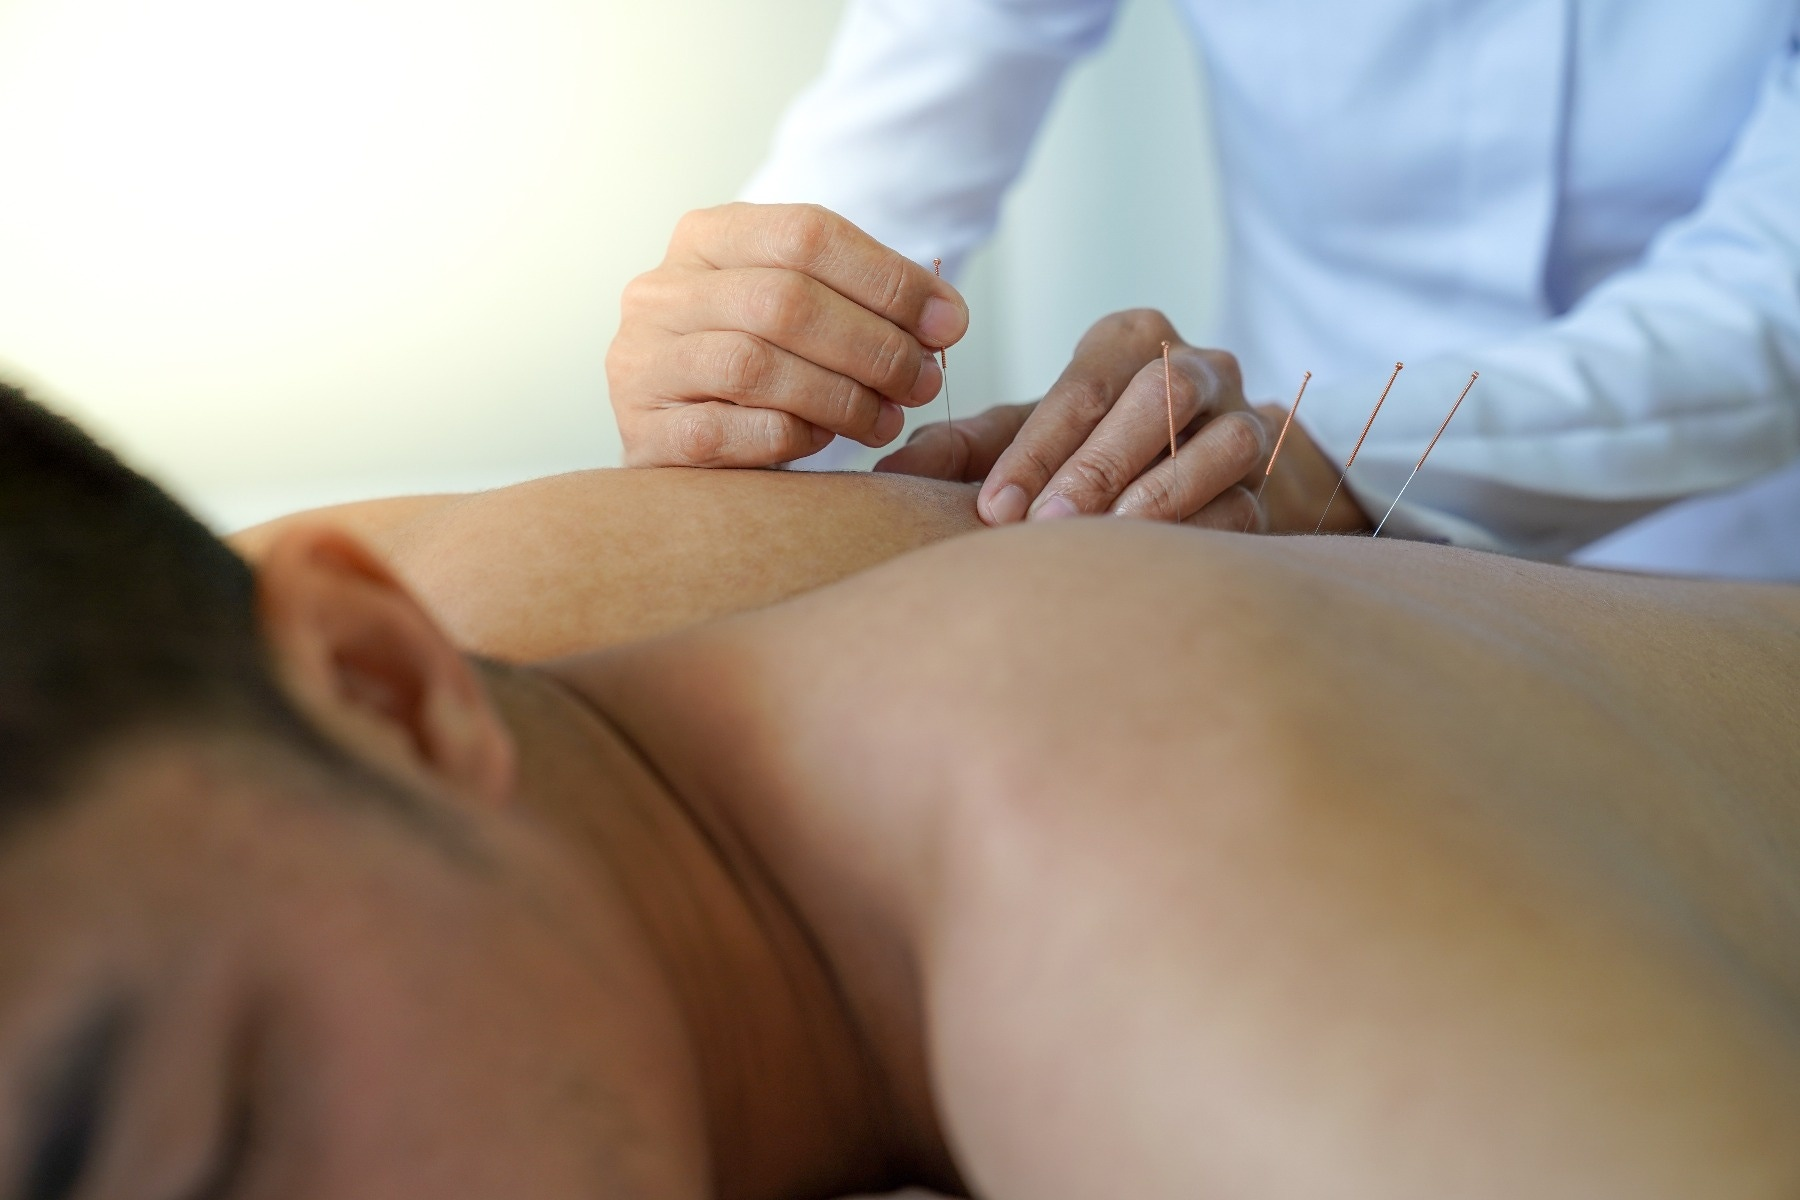 Person laying down on stomach with practioner applying needles to their back to relieve pain